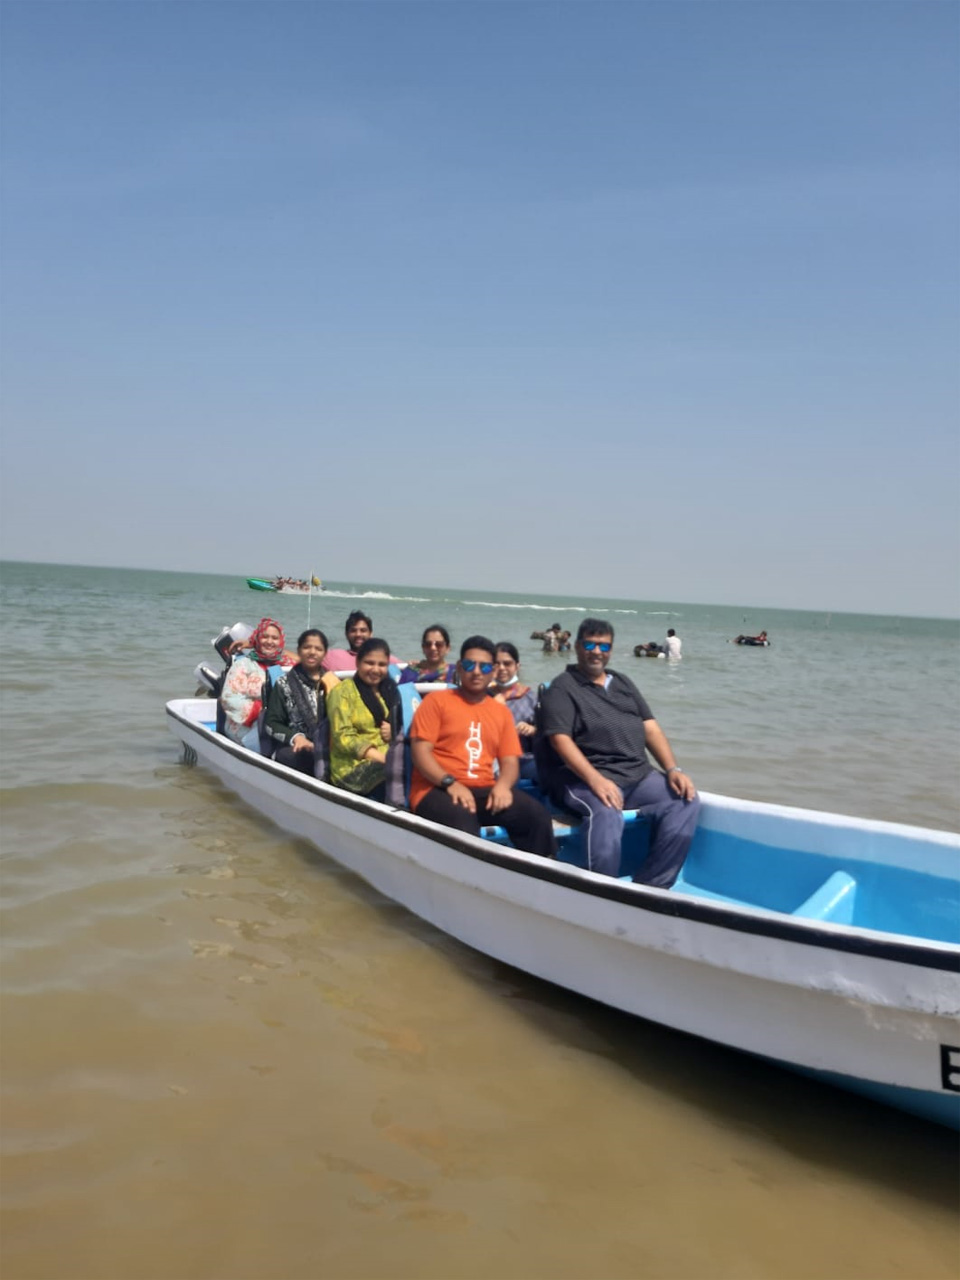 A group picture in the boat, a wonderful experience.